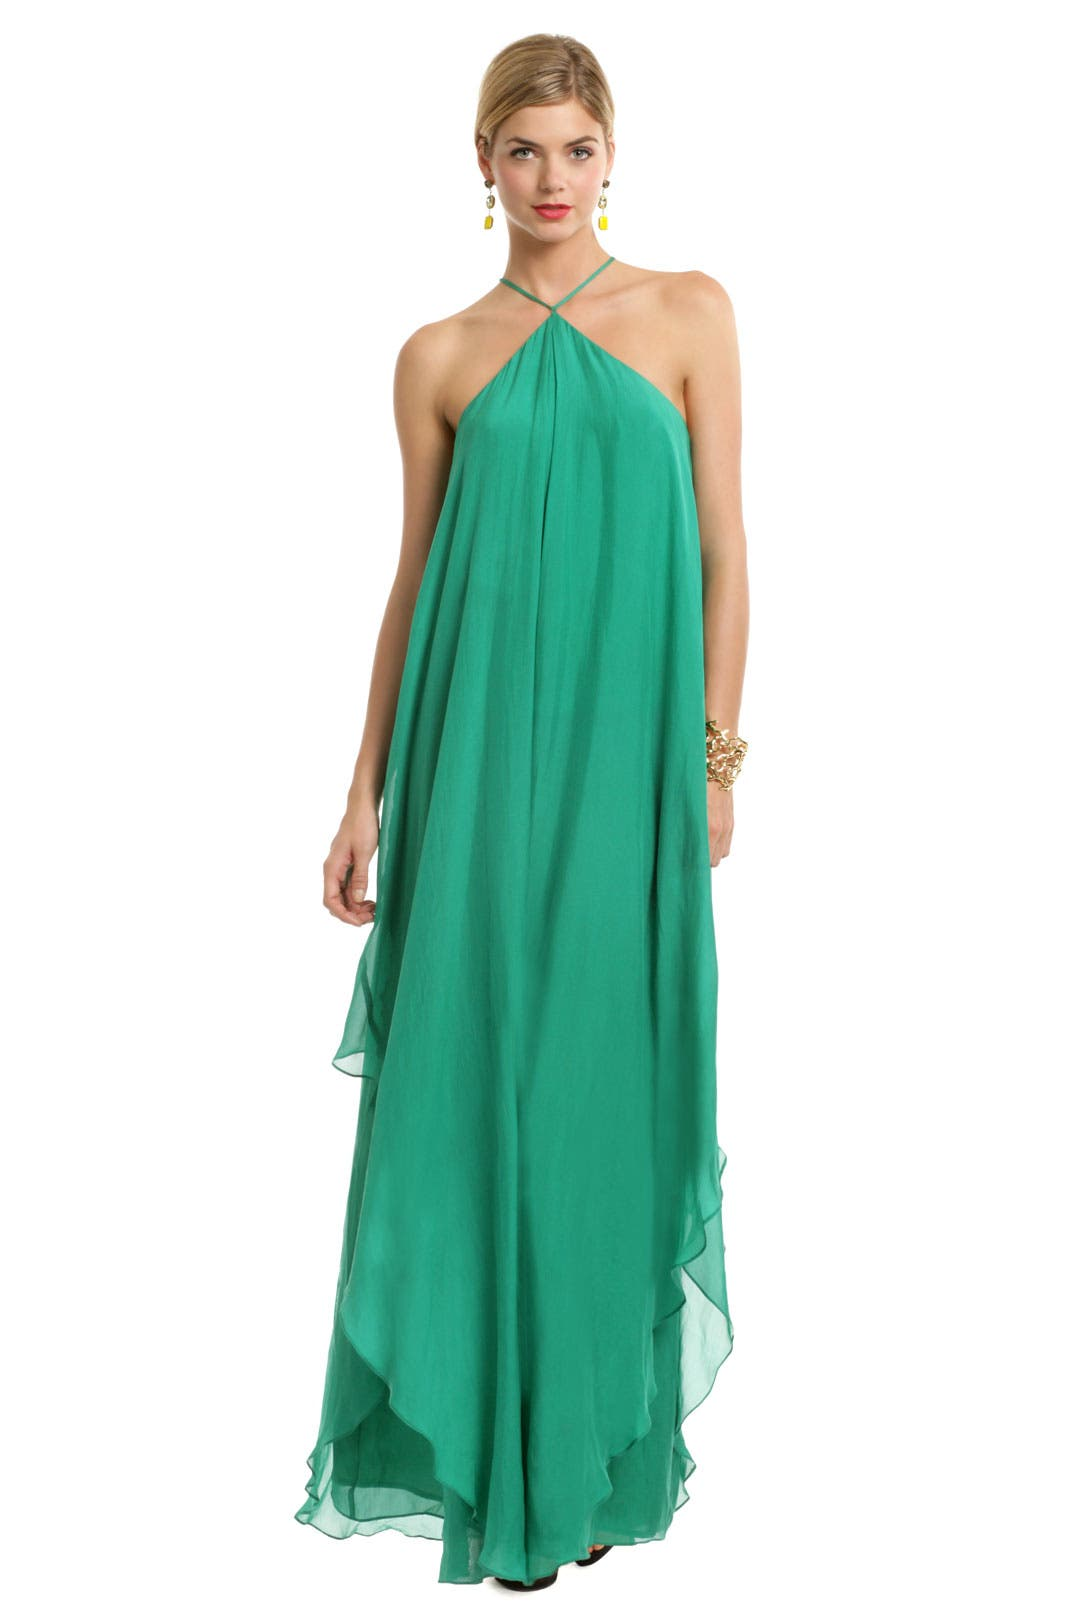 St. John Draped Gown by Trina Turk